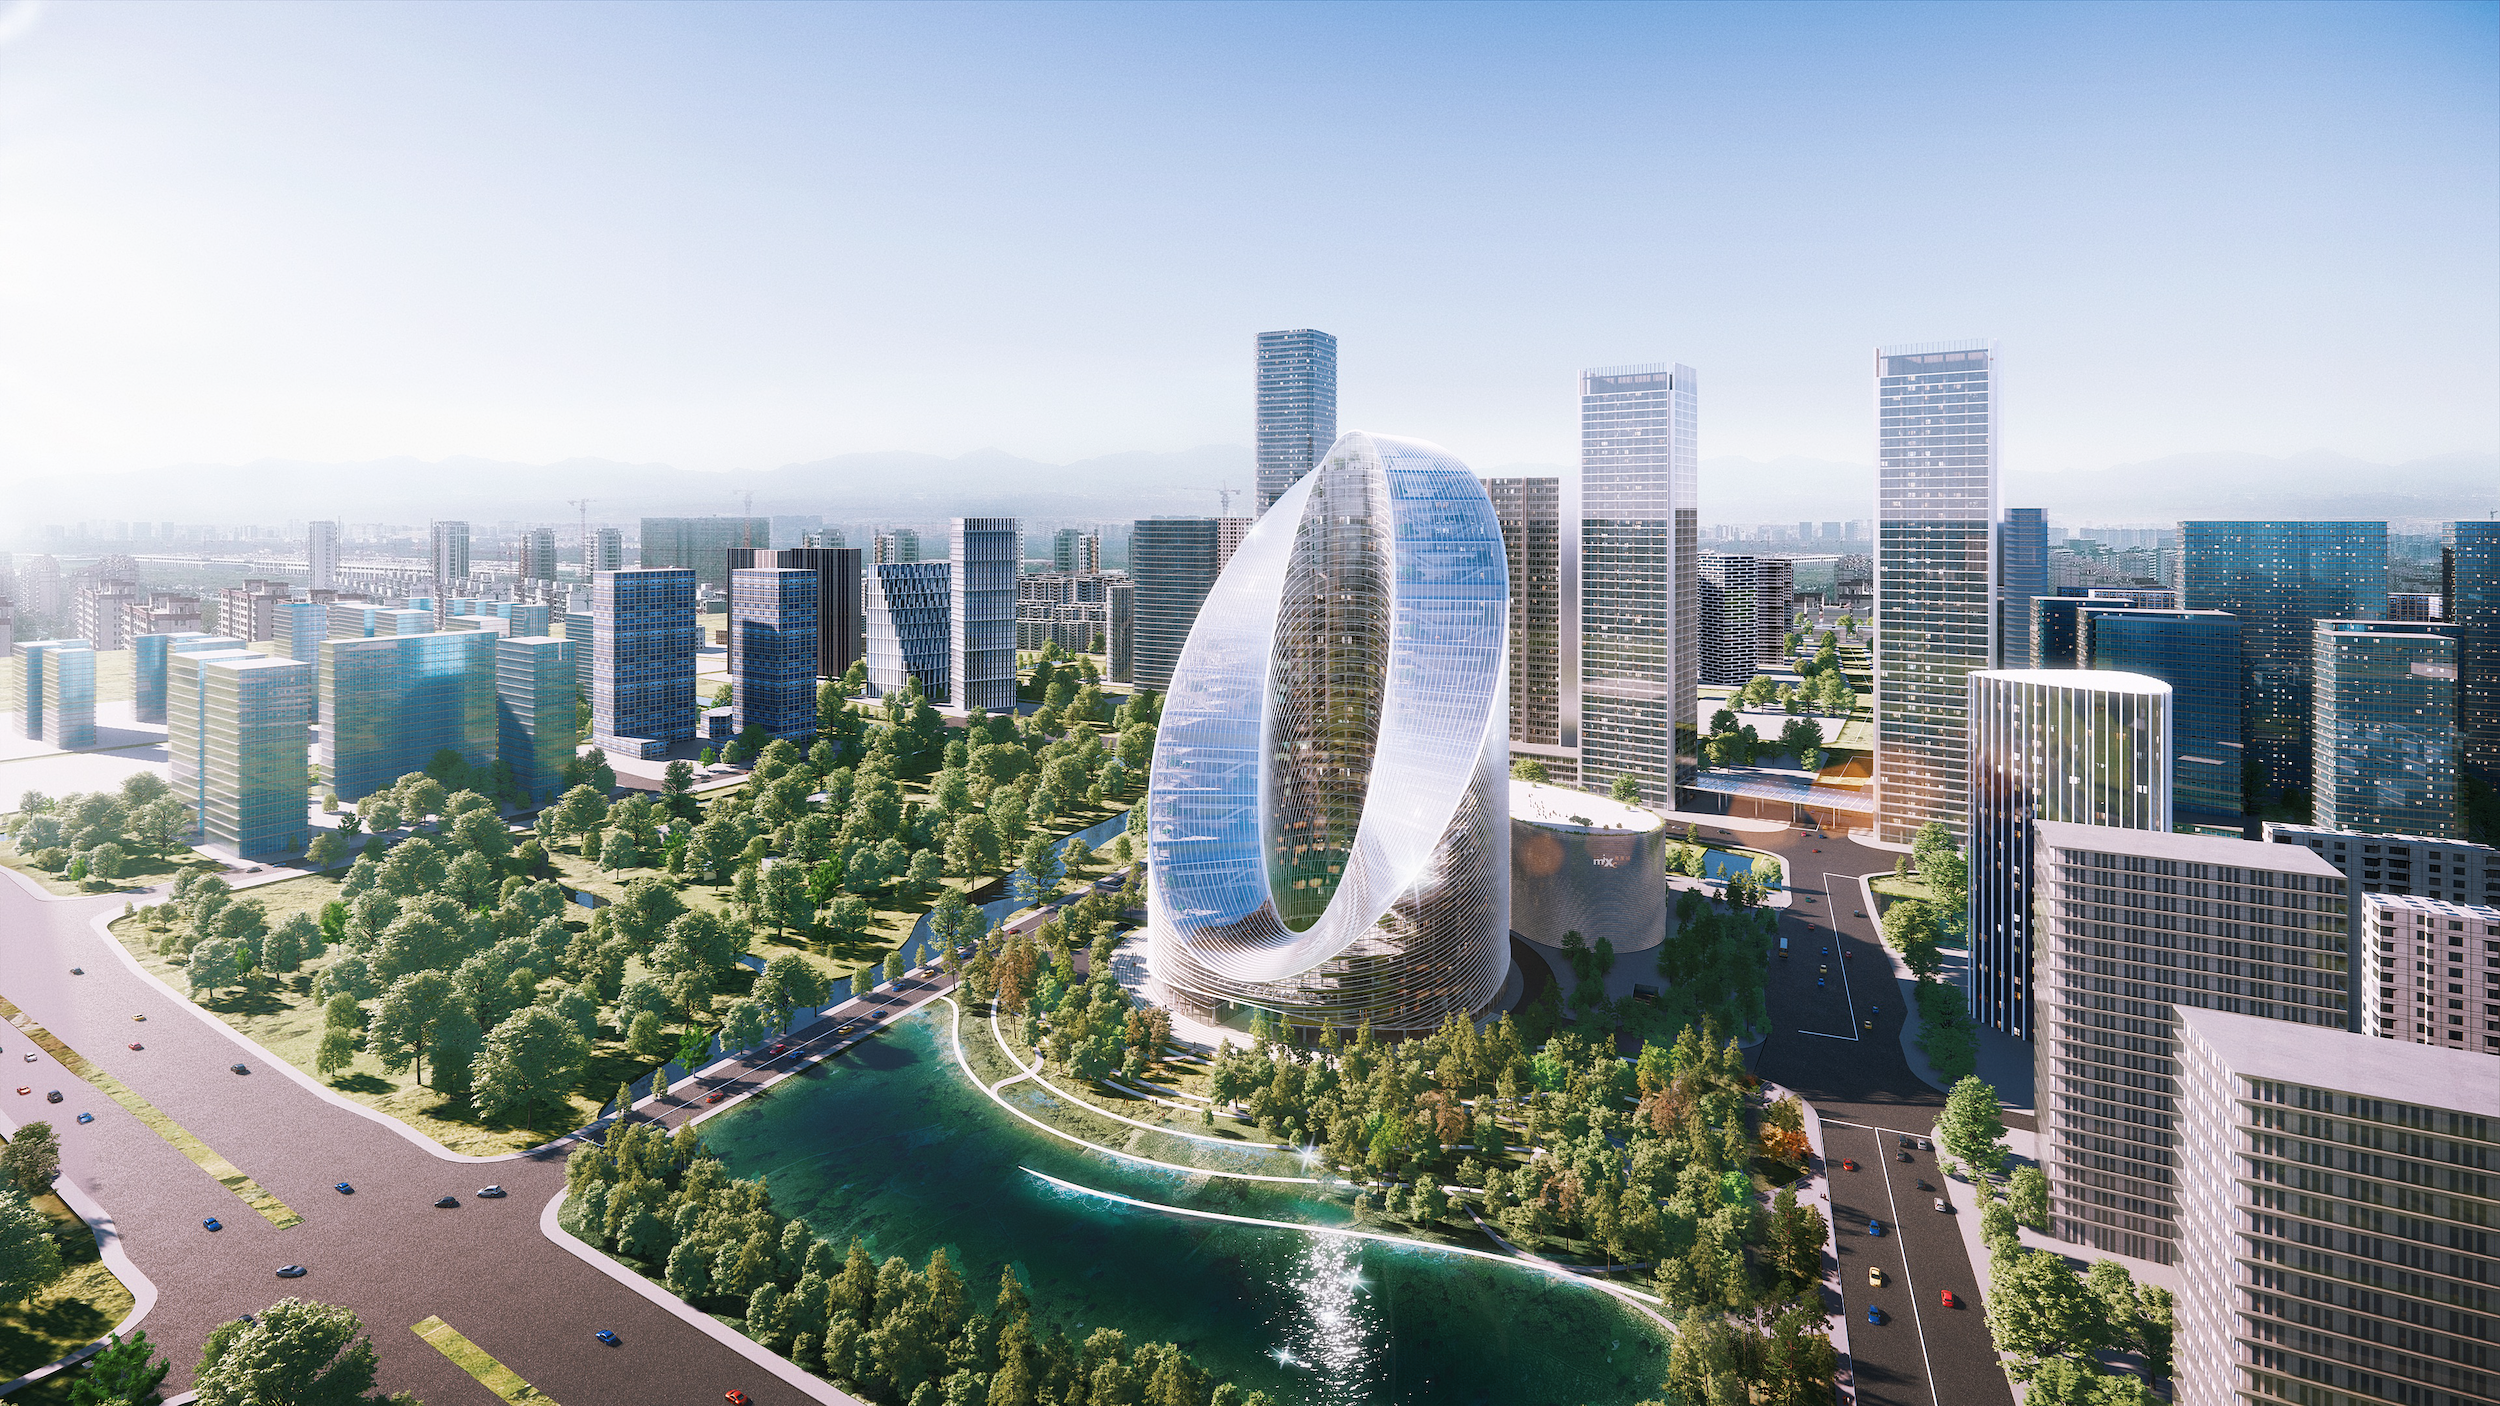 The O-Tower is slated for Hangzhou, on a prominent site between a natural lake, an urban center, and a park